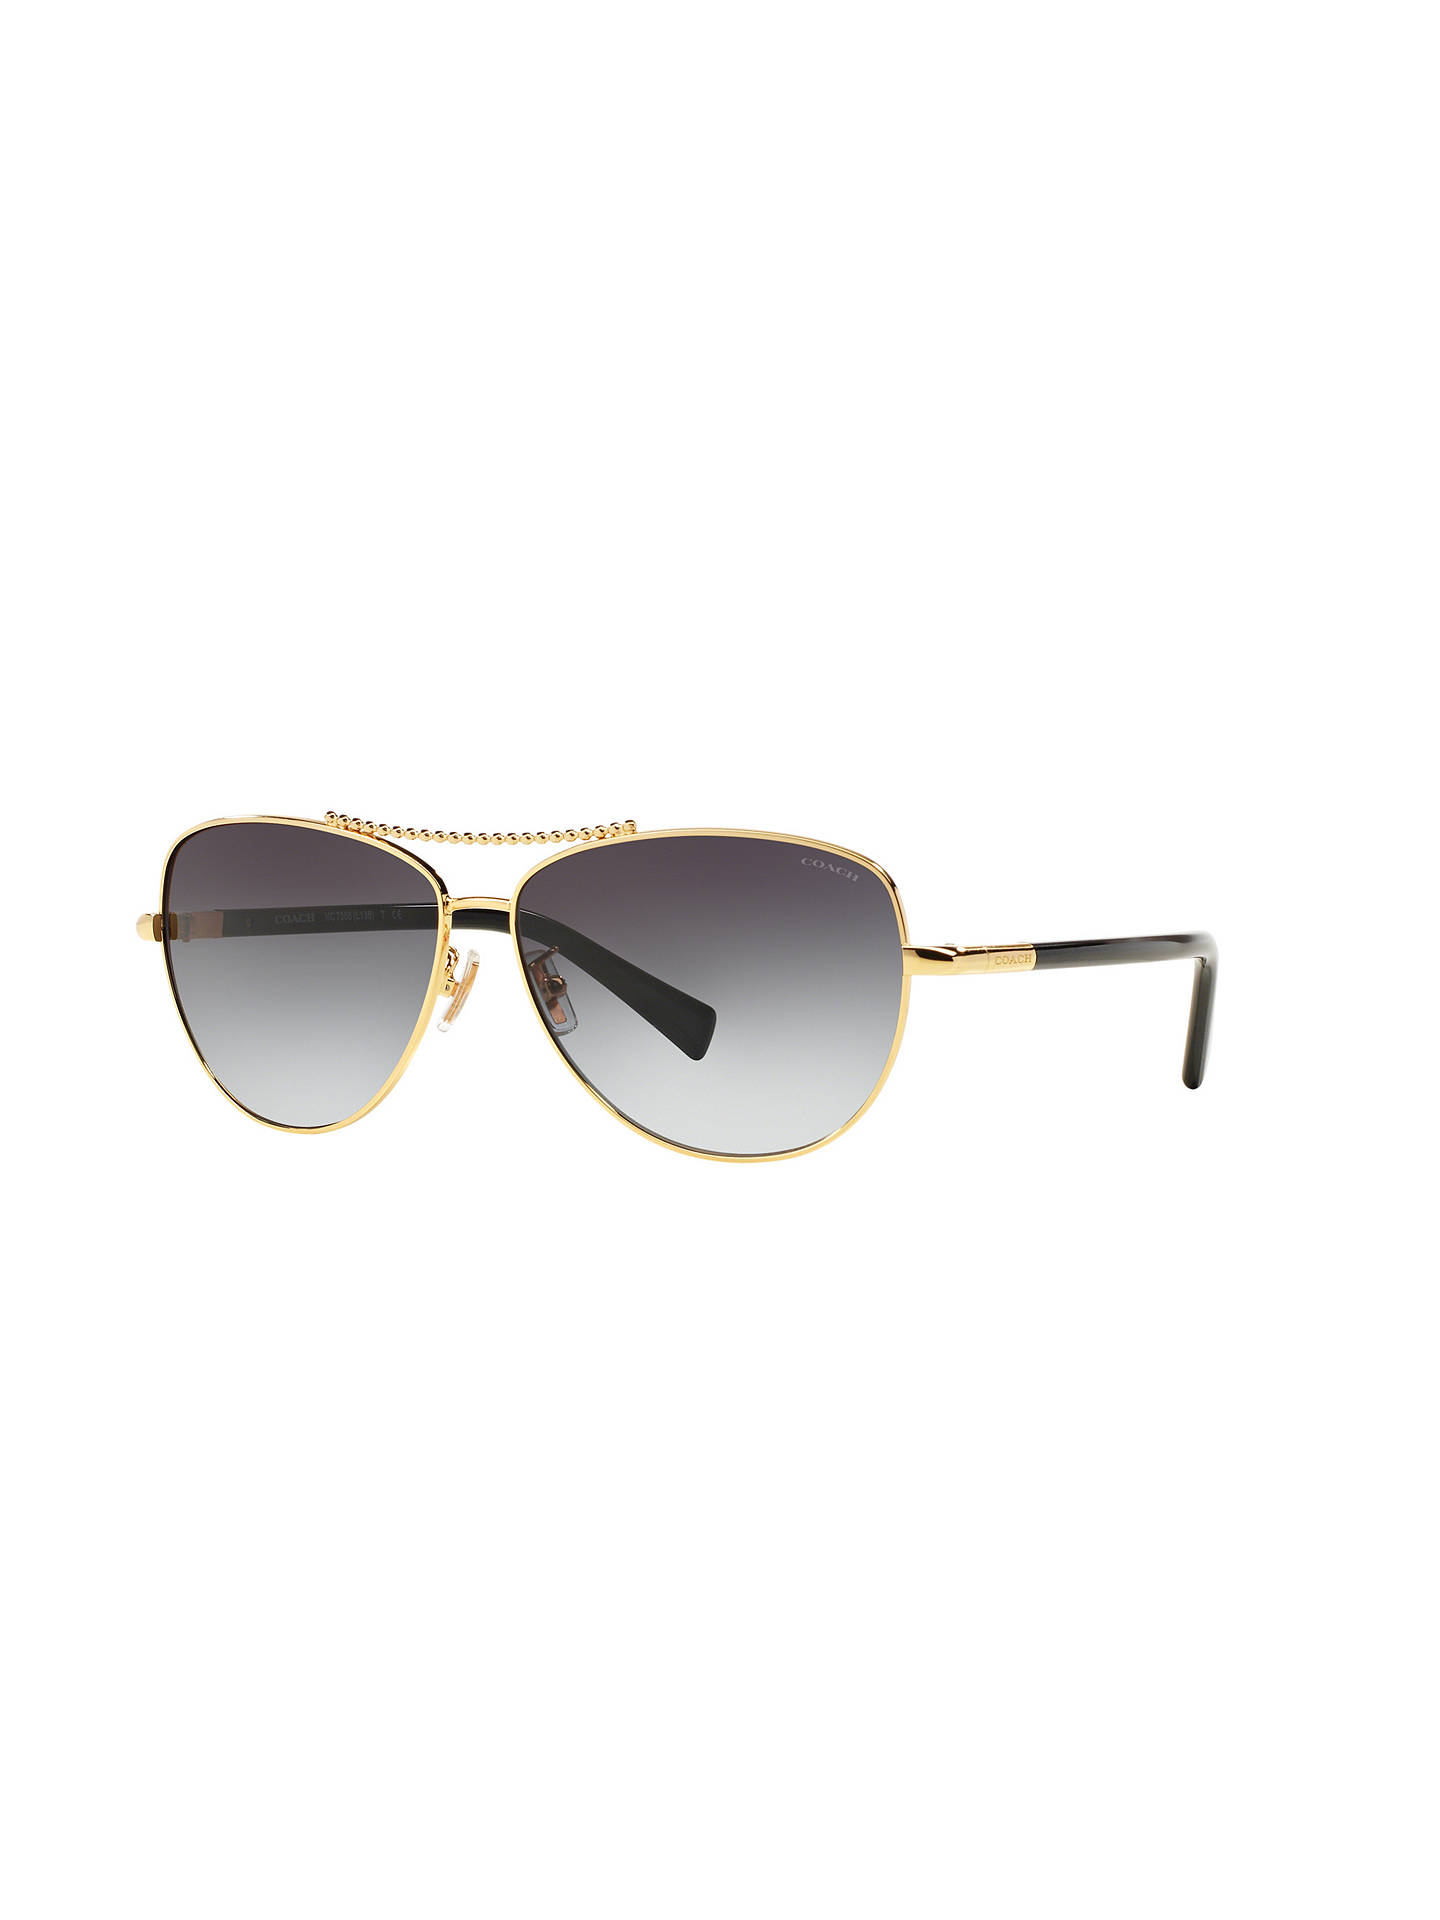 51fabf75b7 ... coupon code buycoach hc7058 aviator sunglasses black gold online at  johnlewis eeea7 974b4